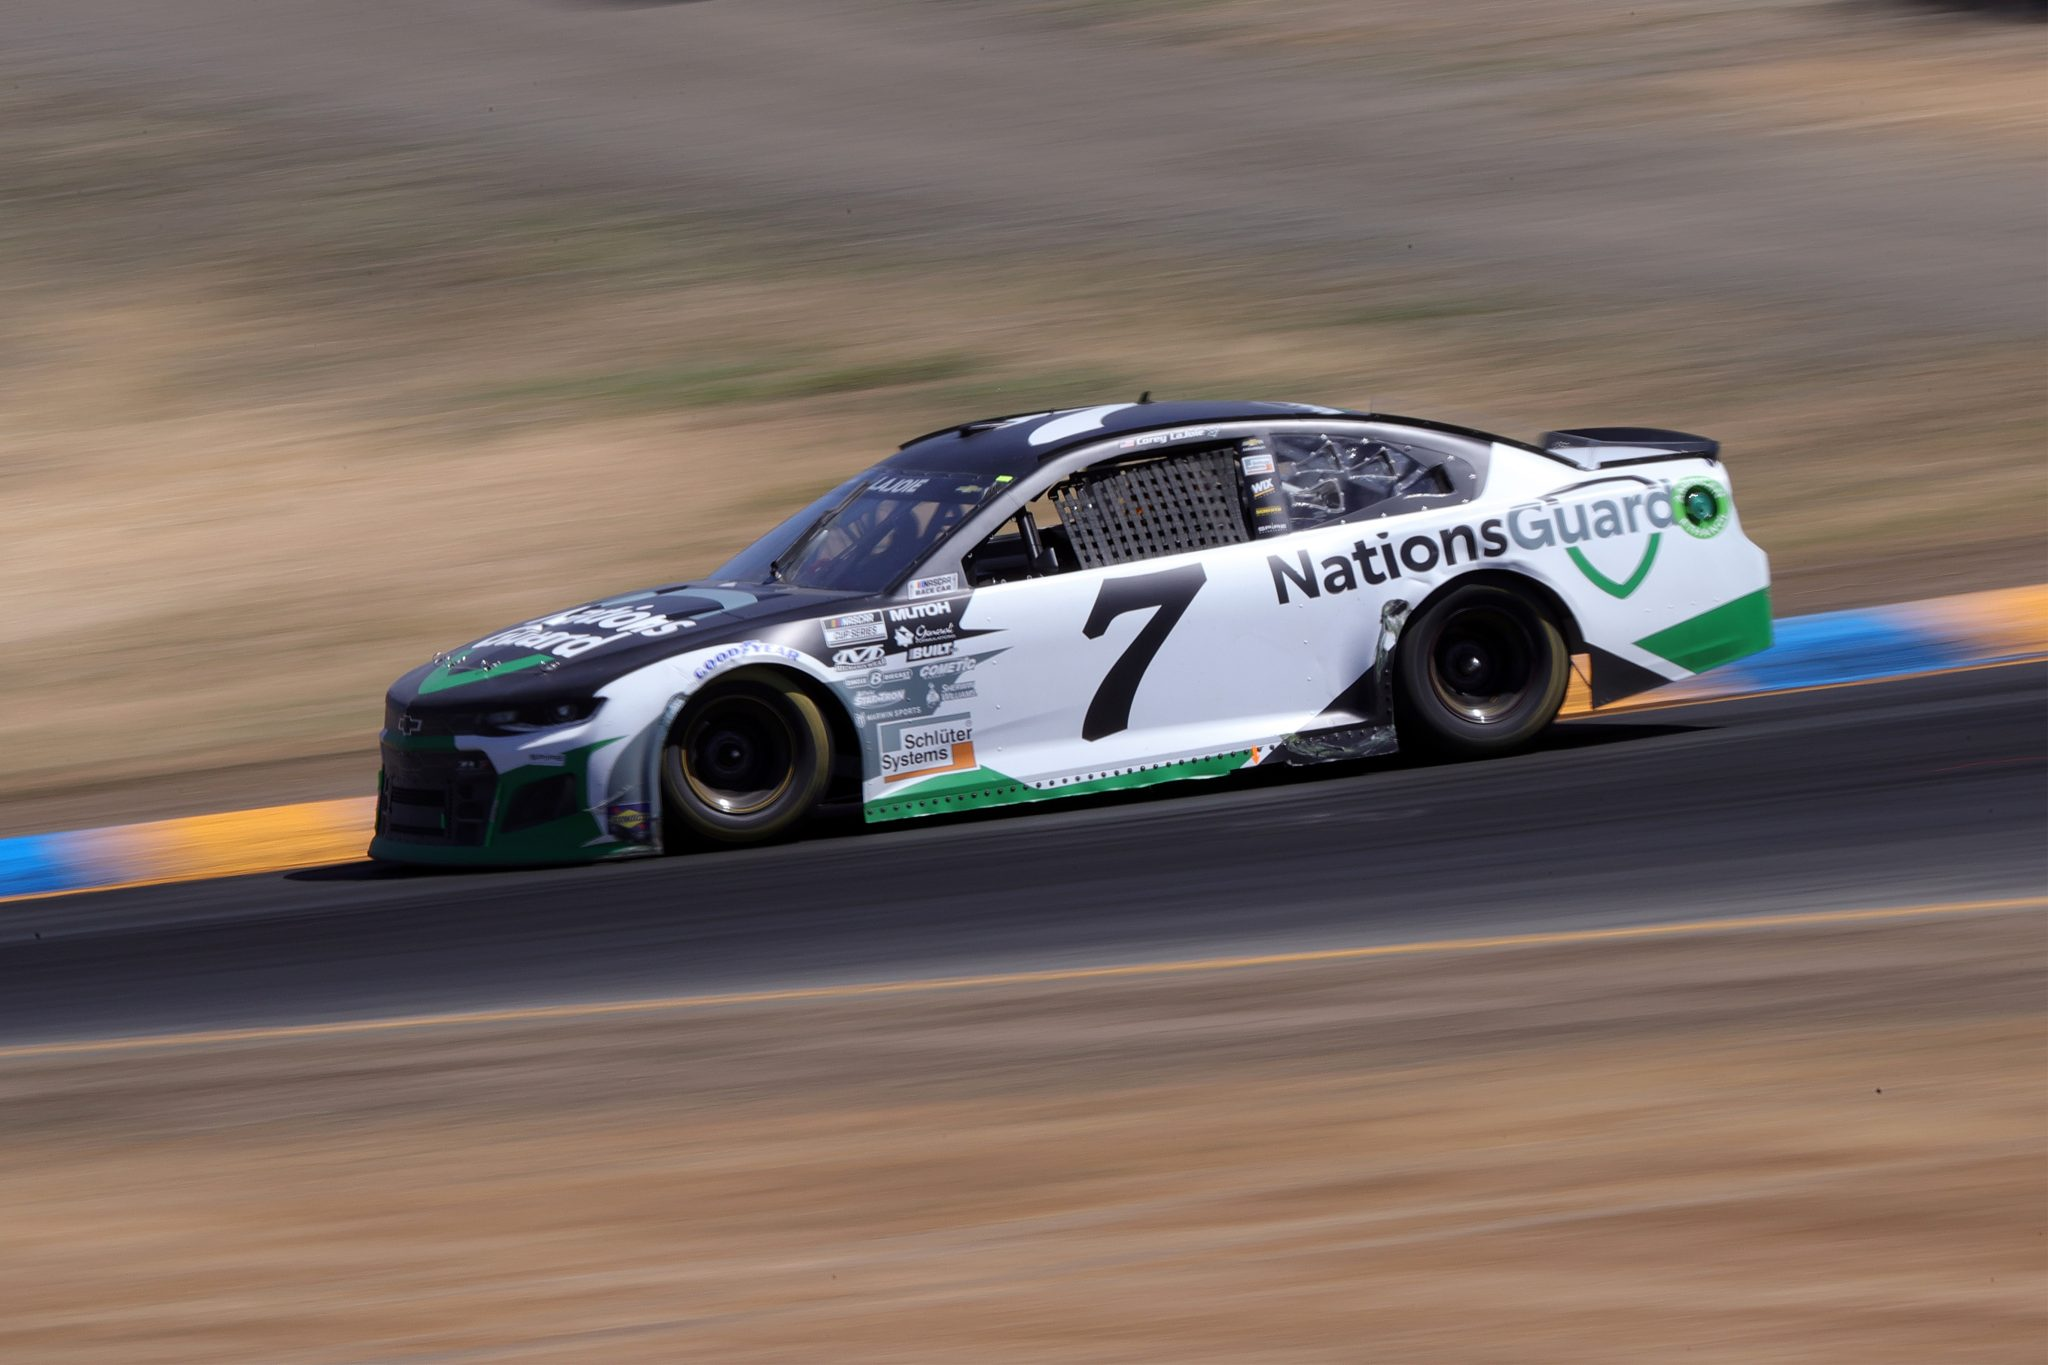 SONOMA, CALIFORNIA - JUNE 06: Corey LaJoie, driver of the #7 Nations Guard Chevrolet, drives during the NASCAR Cup Series Toyota/Save Mart 350 at Sonoma Raceway on June 06, 2021 in Sonoma, California. (Photo by Carmen Mandato/Getty Images) | Getty Images